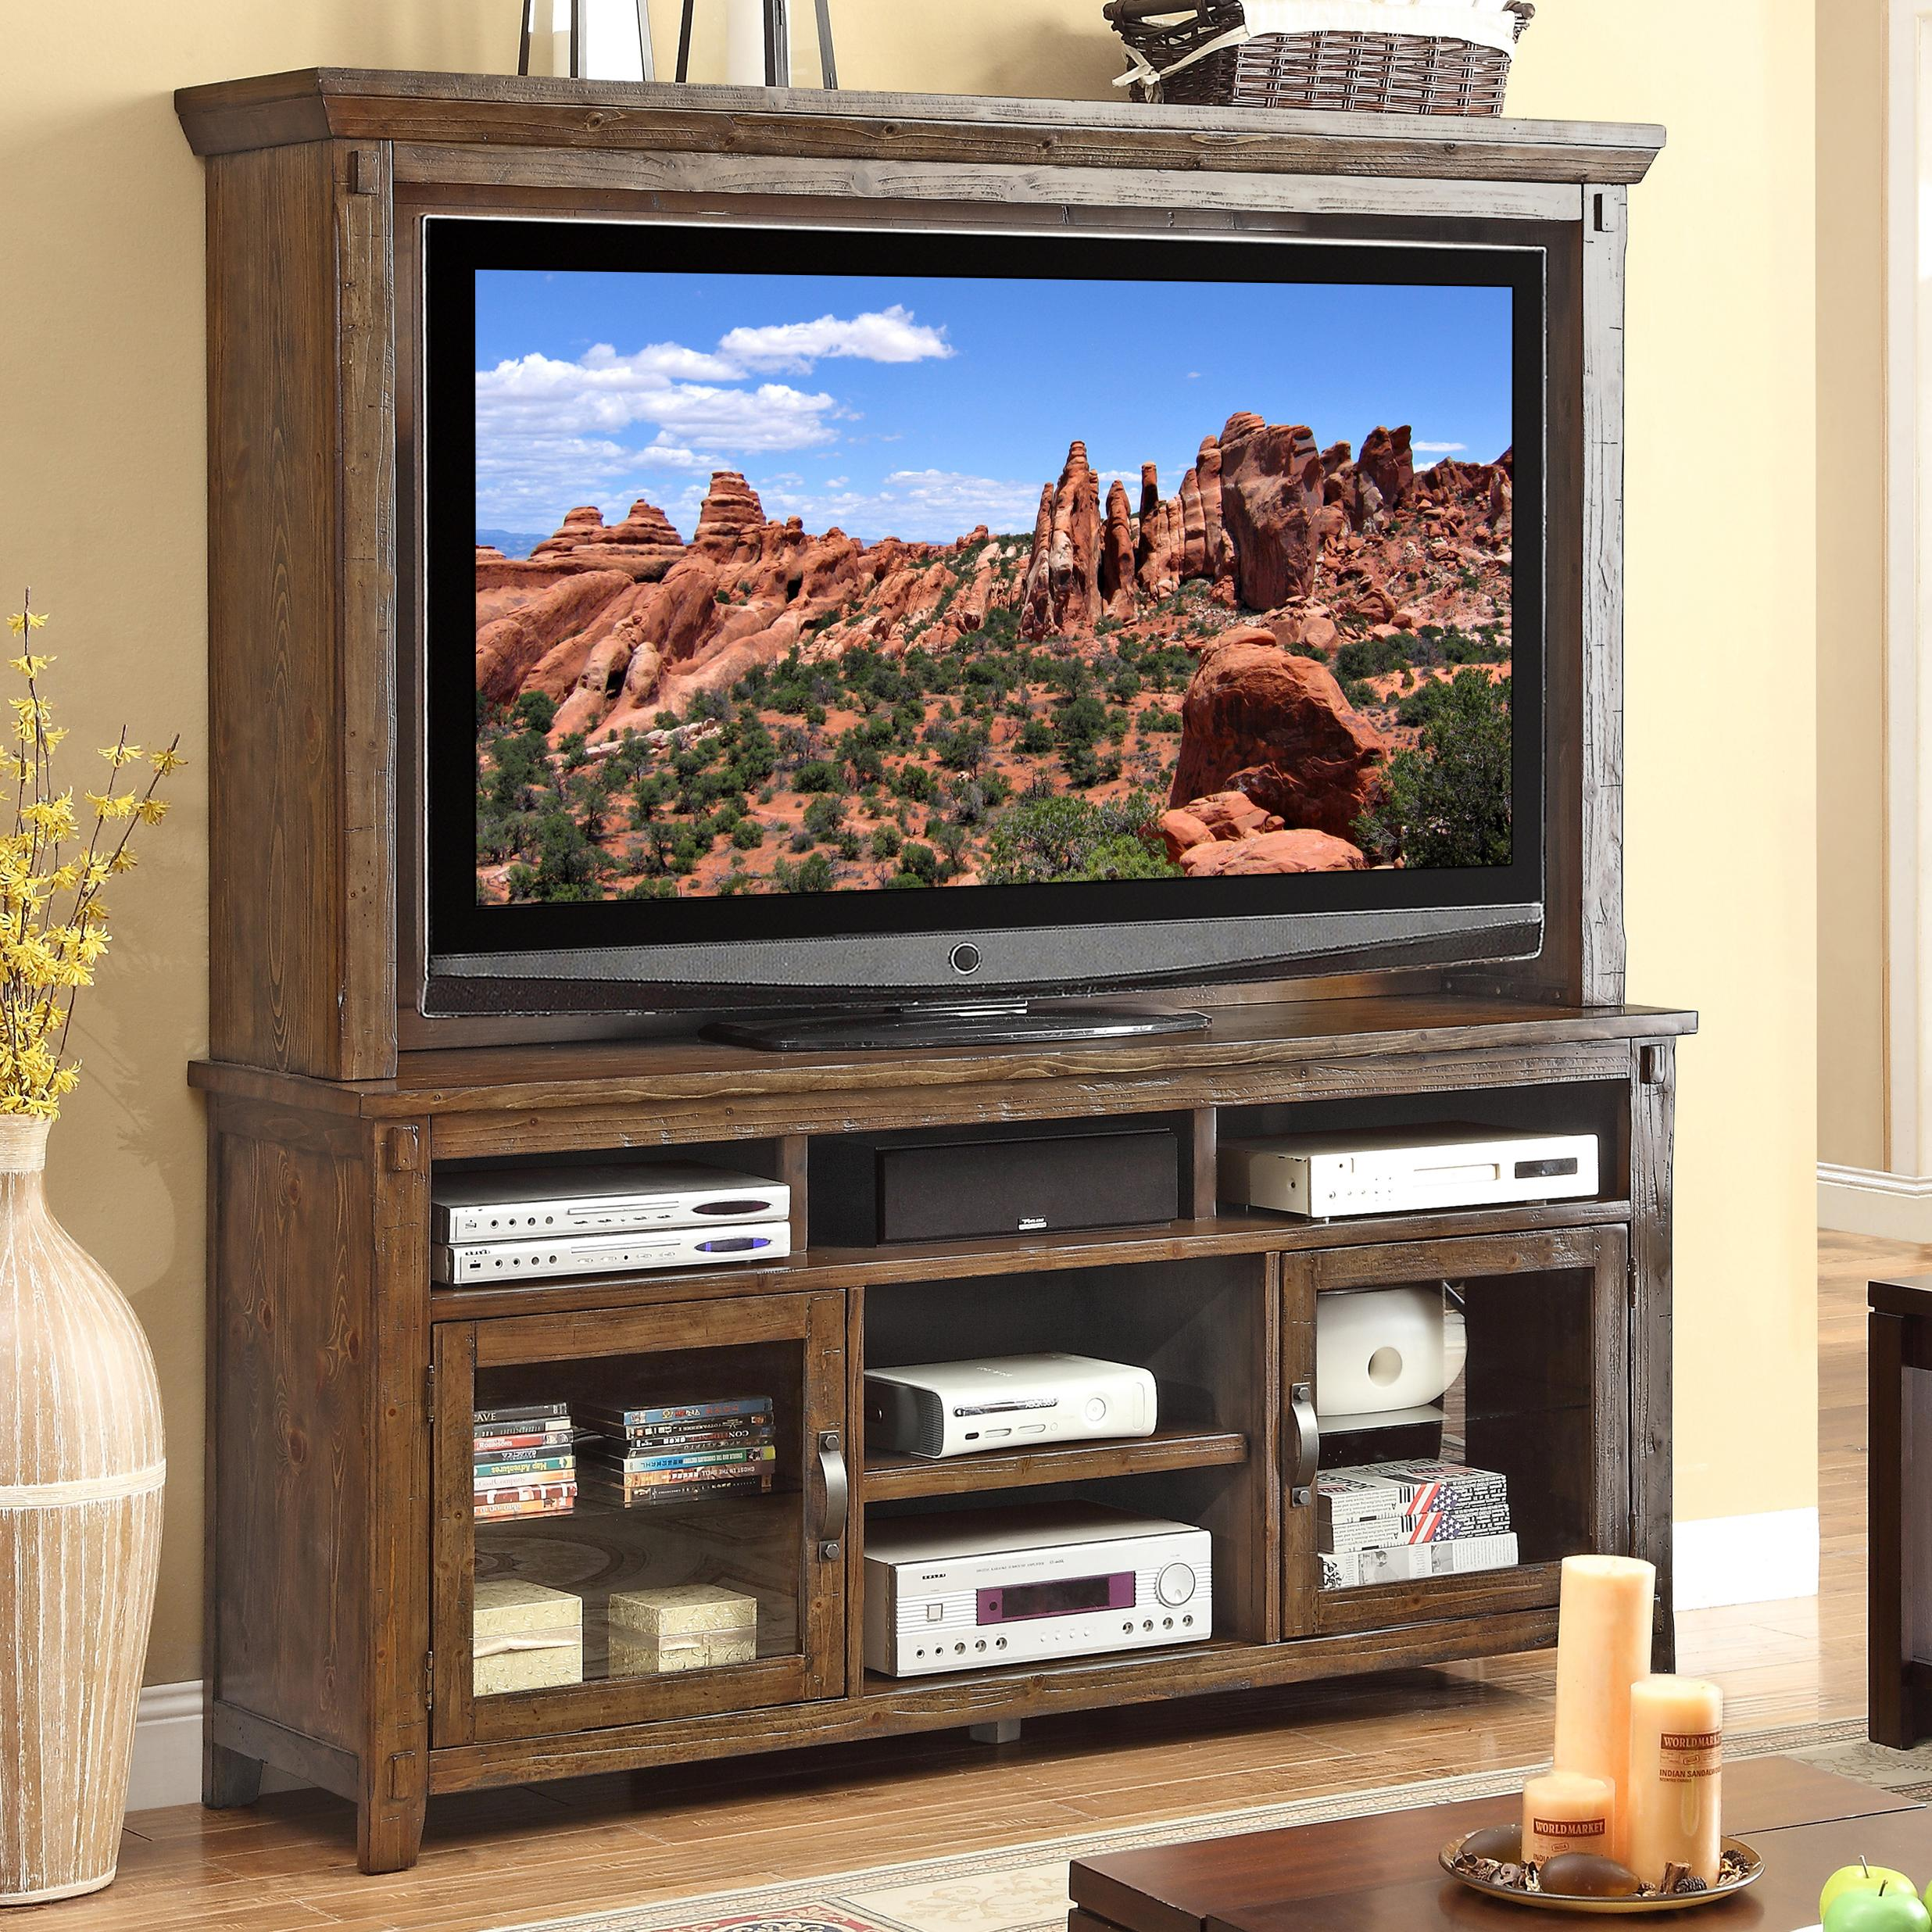 Stressless View Legends Furniture Restoration Rustic Casual Tv Console And